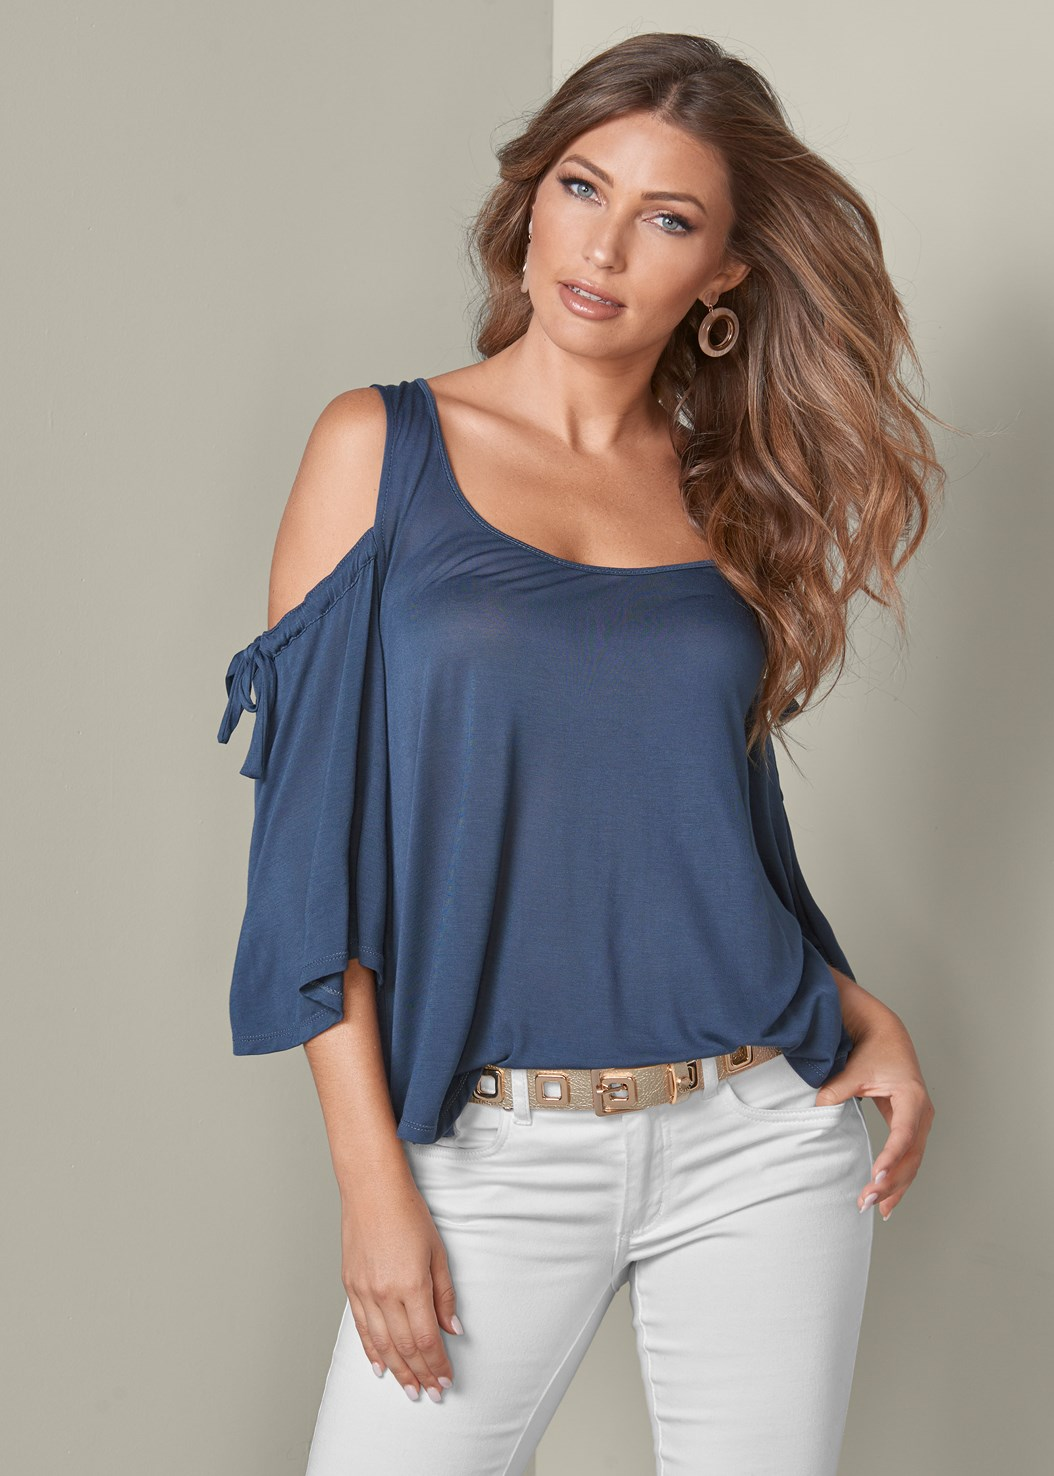 Cold Shoulder Top,Mid Rise Color Skinny Jeans